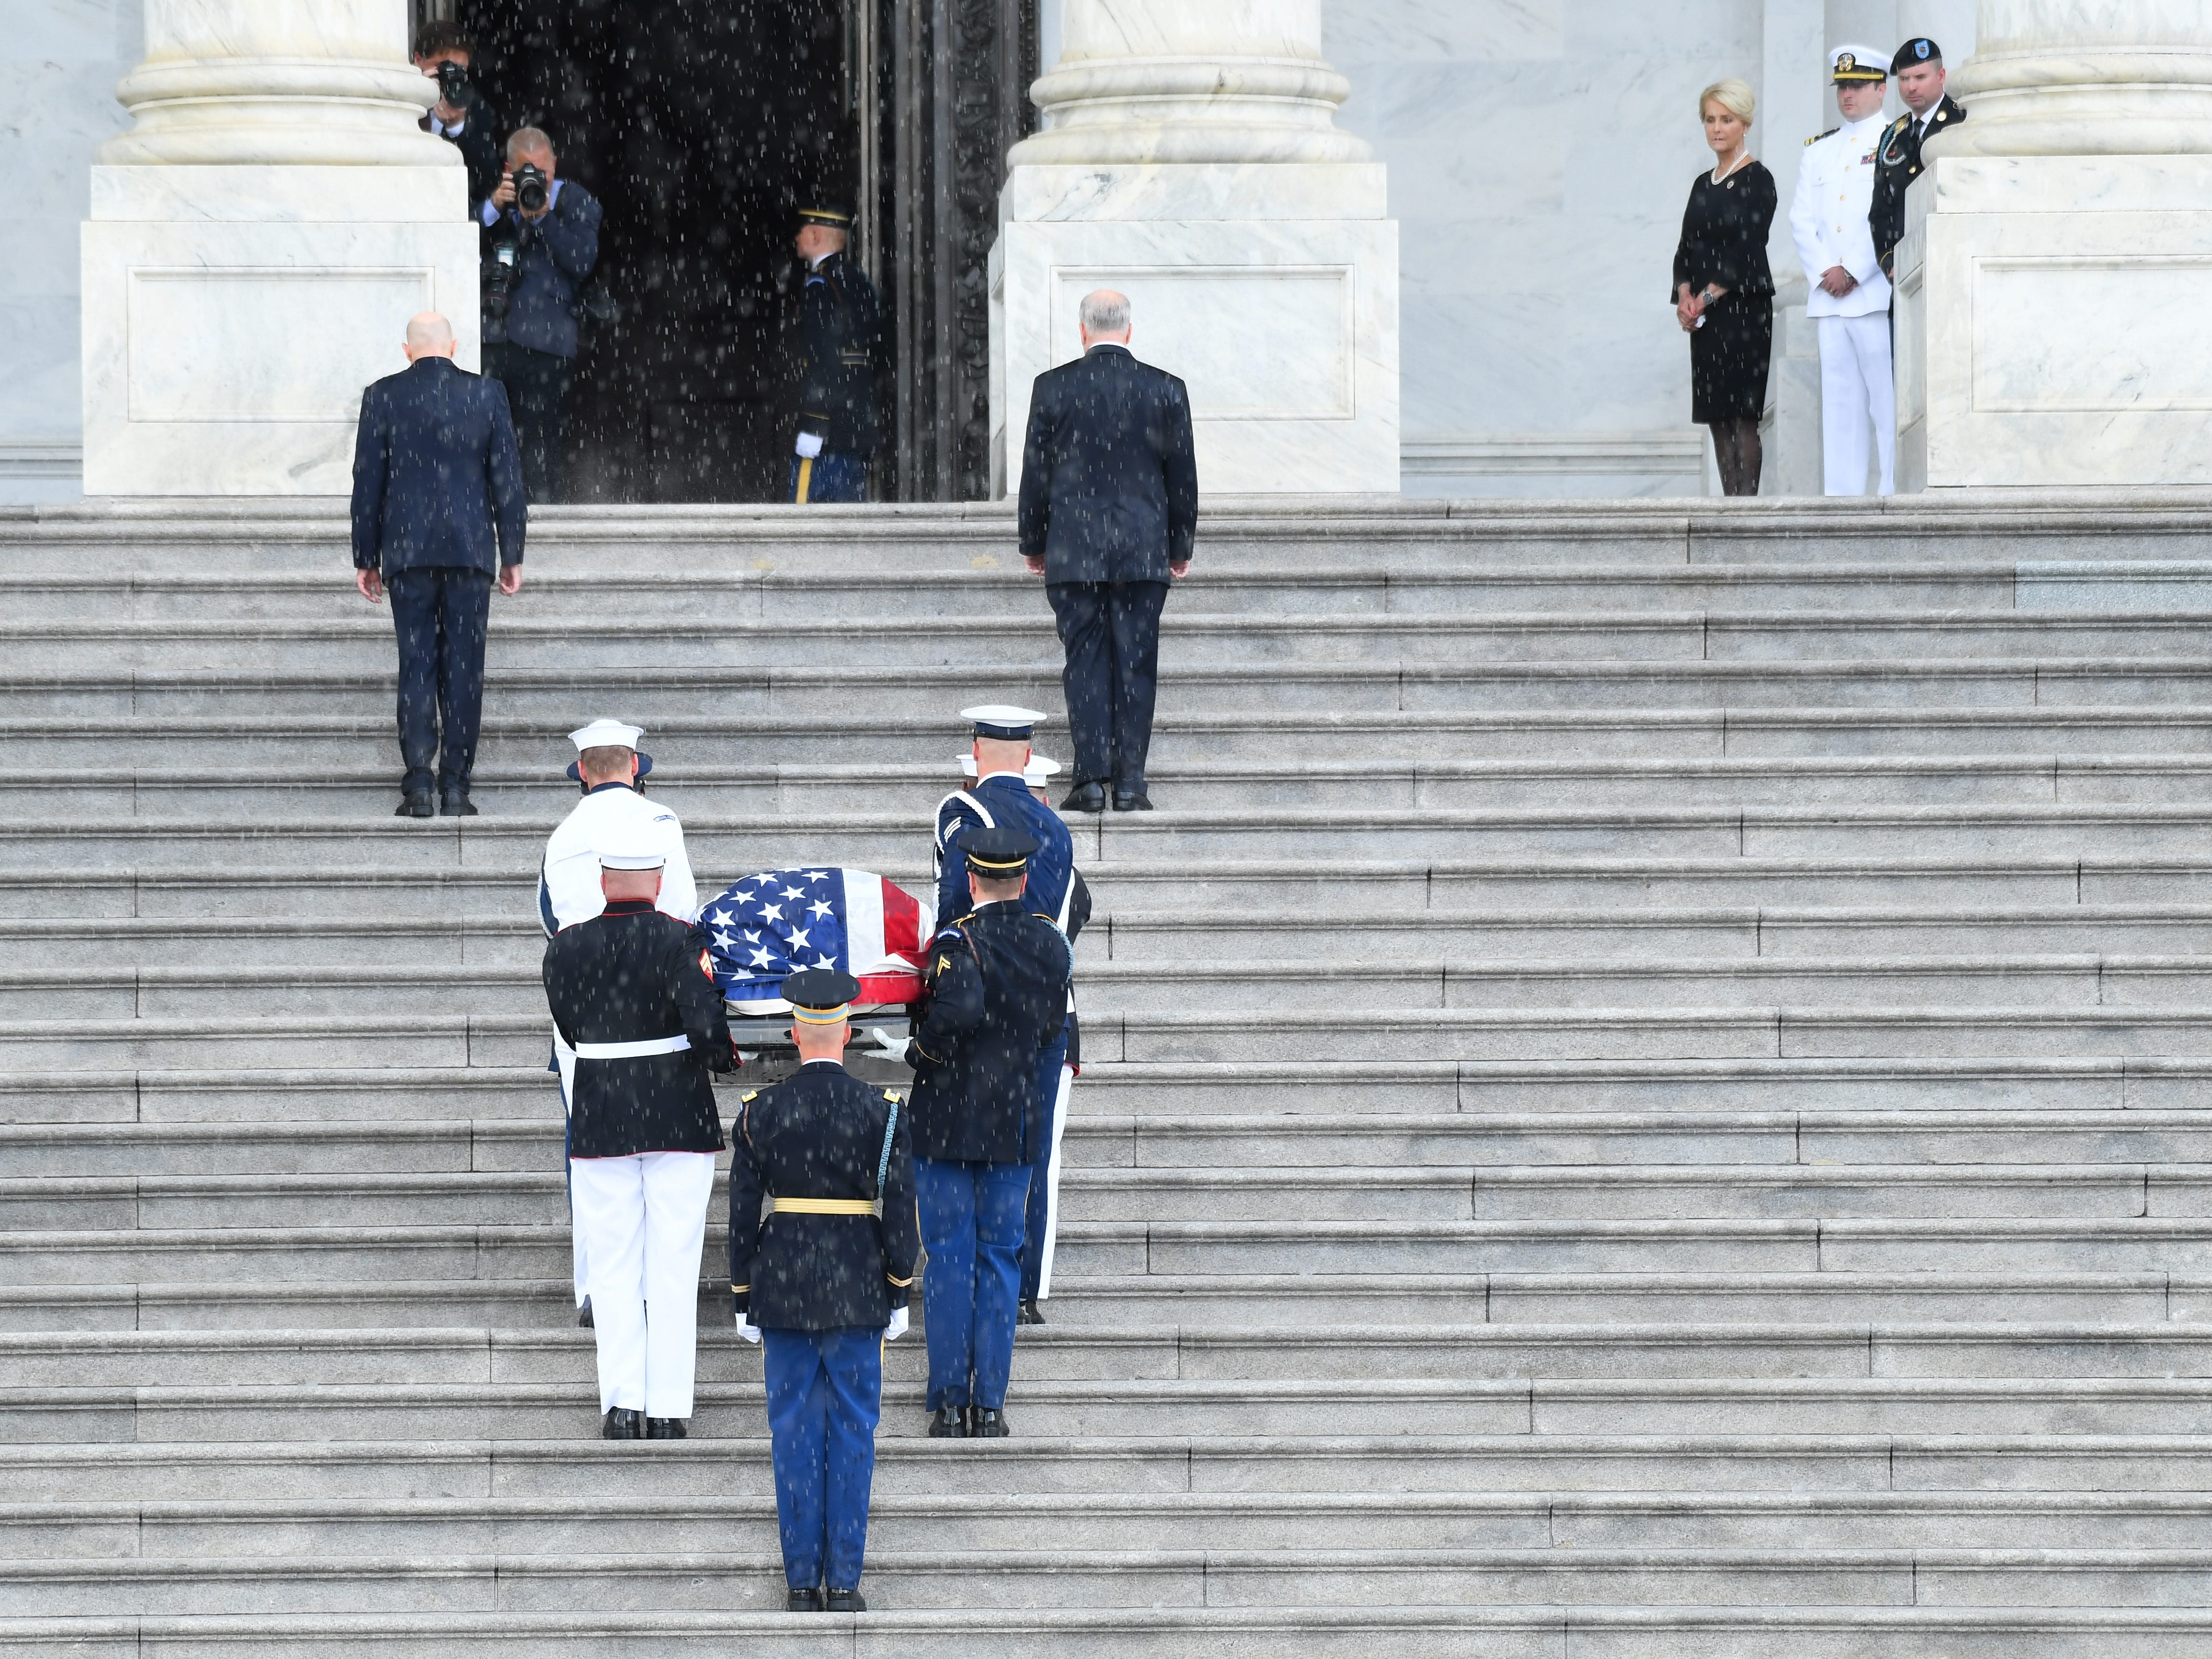 8/31/18 10:43:21 AM -- Washington, DC, U.S.A  -- The casket of John McCain arriving at the U.S. Capitol while his wife Cindy McCain along with her two sons Jack and Jimmy McCain at the U.S. Capitol in Washington on Aug. 31, 2018 in Washington. Sen. McCain died on Aug. 25. --    Photo by Jack Gruber, USA TODAY Staff ORG XMIT:  JG 137435 McCain U.S. Capi 8/31 (Via OlyDrop)